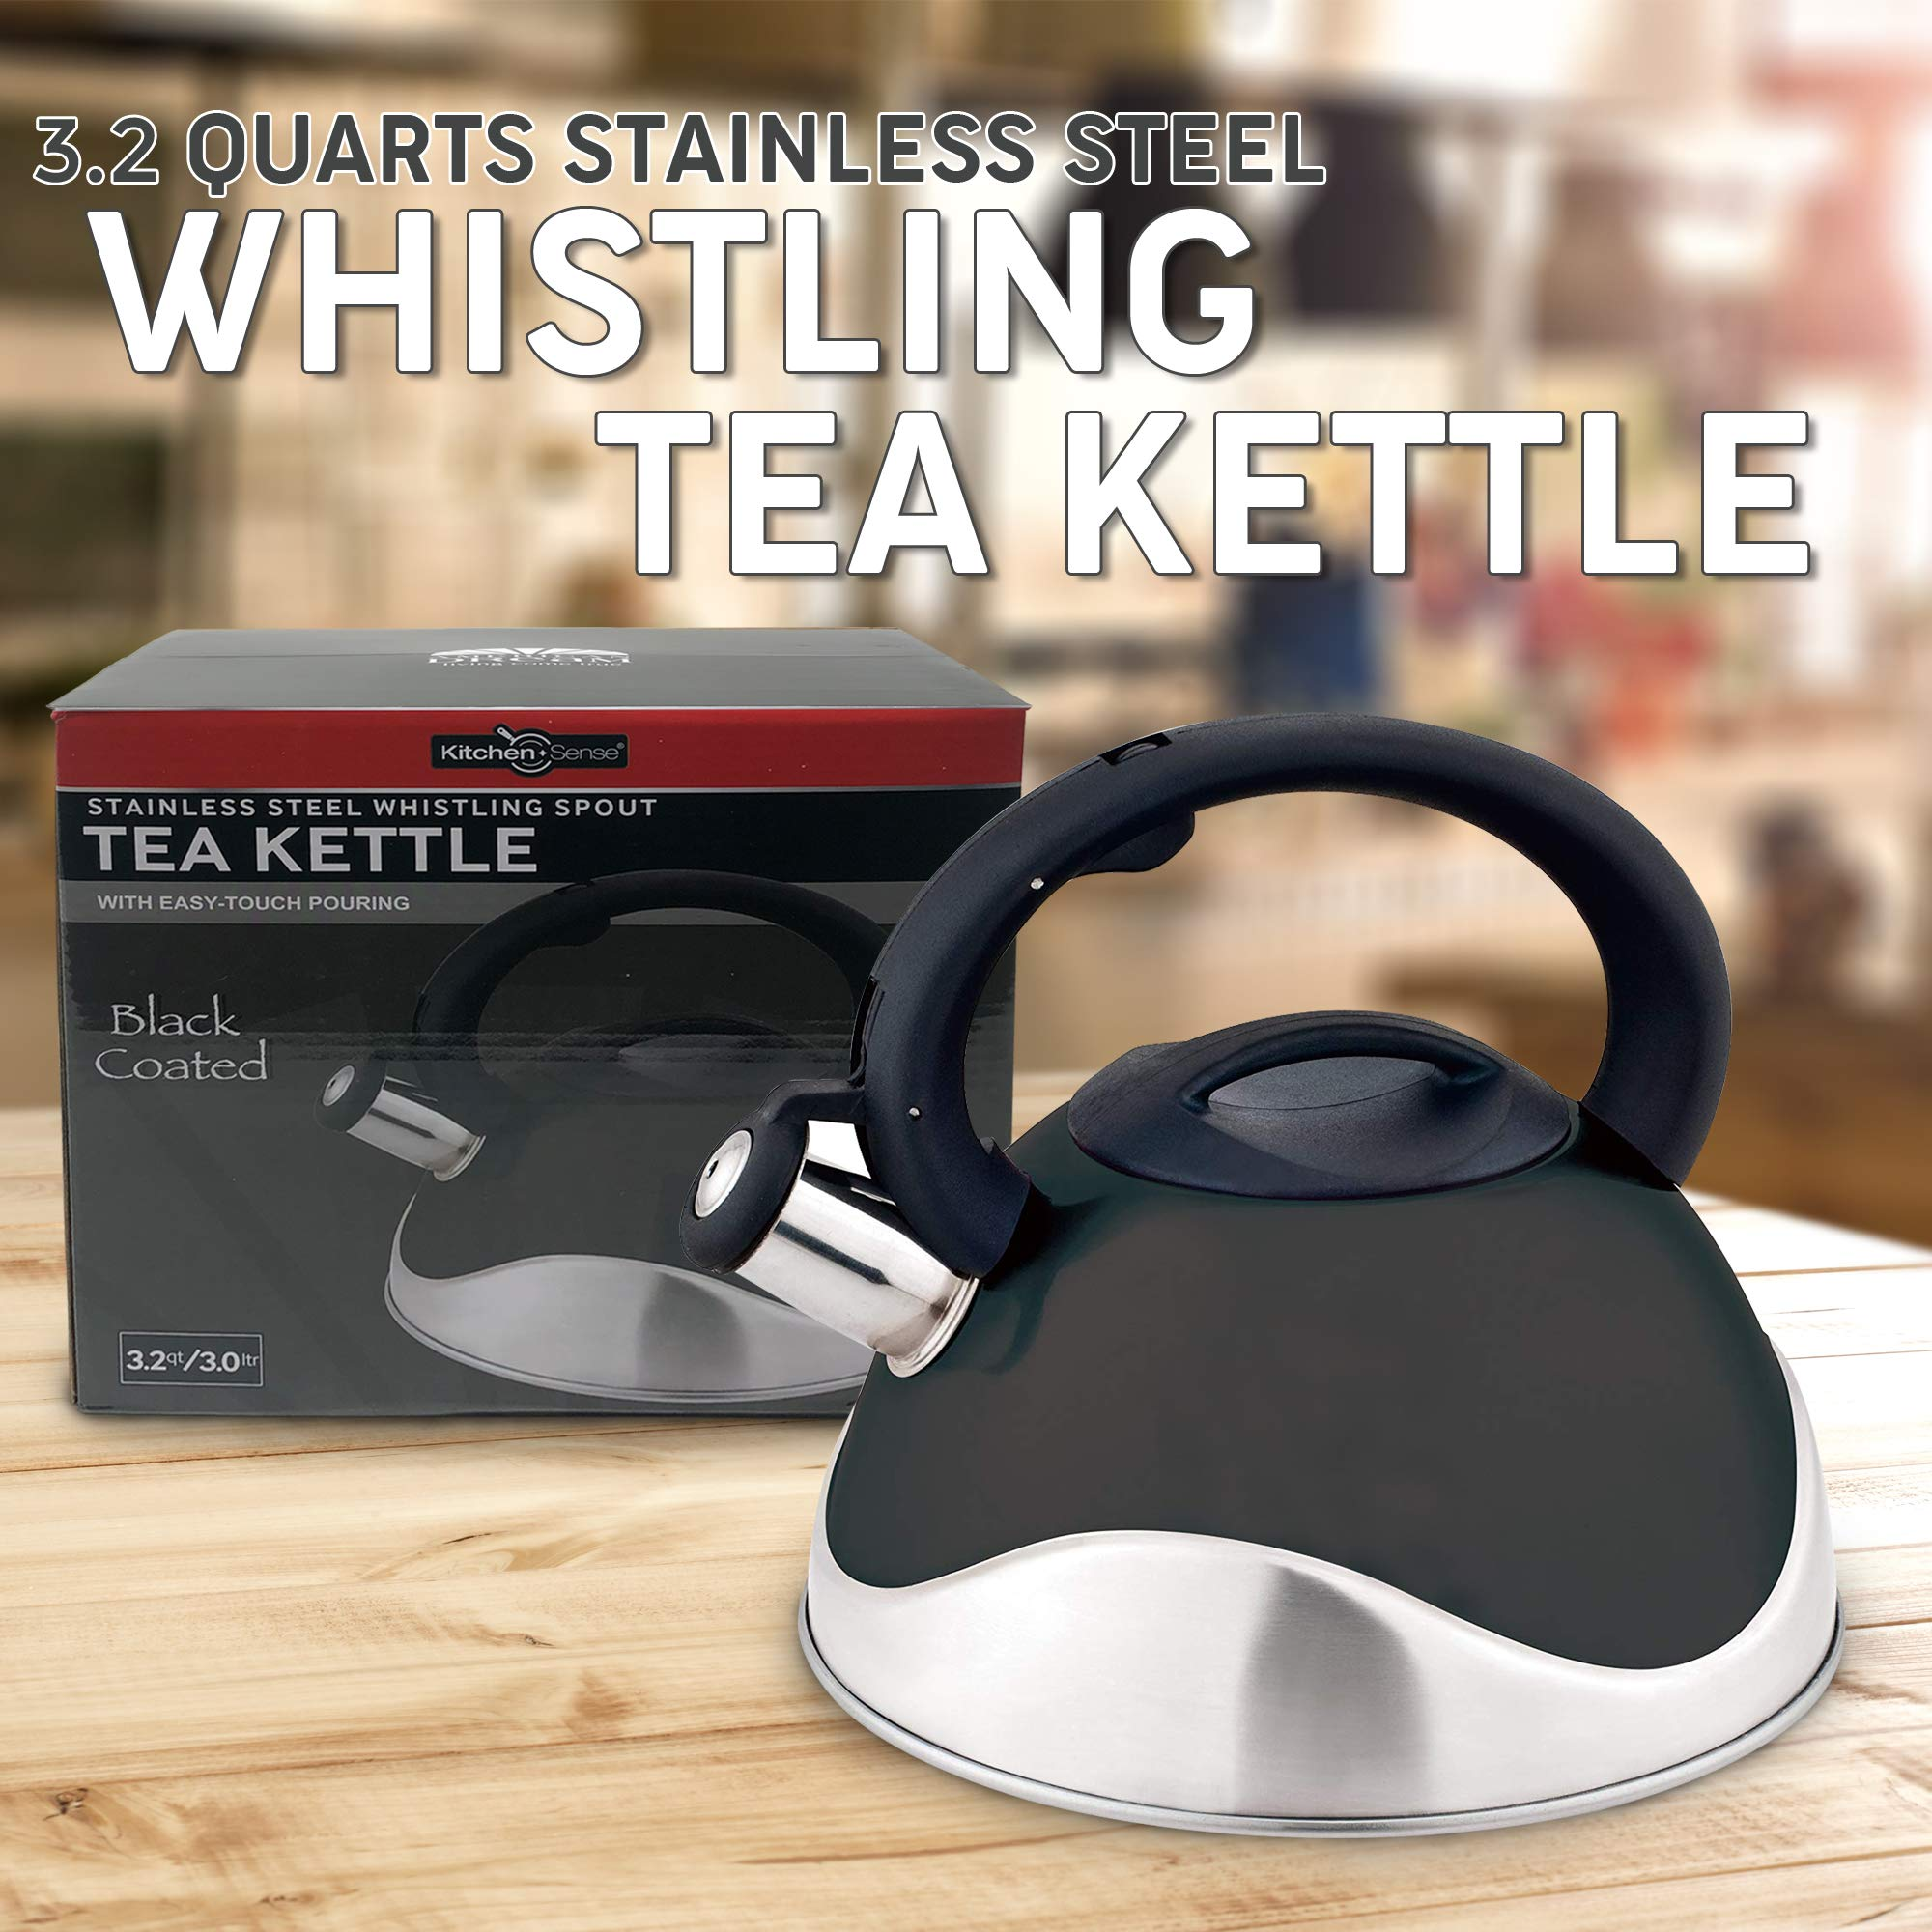 Whistling Stainless Steel Food Grade Black Tea Kettle with Soft Grip Anti-Hot Handle Anti-Rust 13 Cup Teapot by American Dream- Stovetop Suitable  for All Heat Sources Capsuled Bottom Teakettle by American Dream (Image #2)